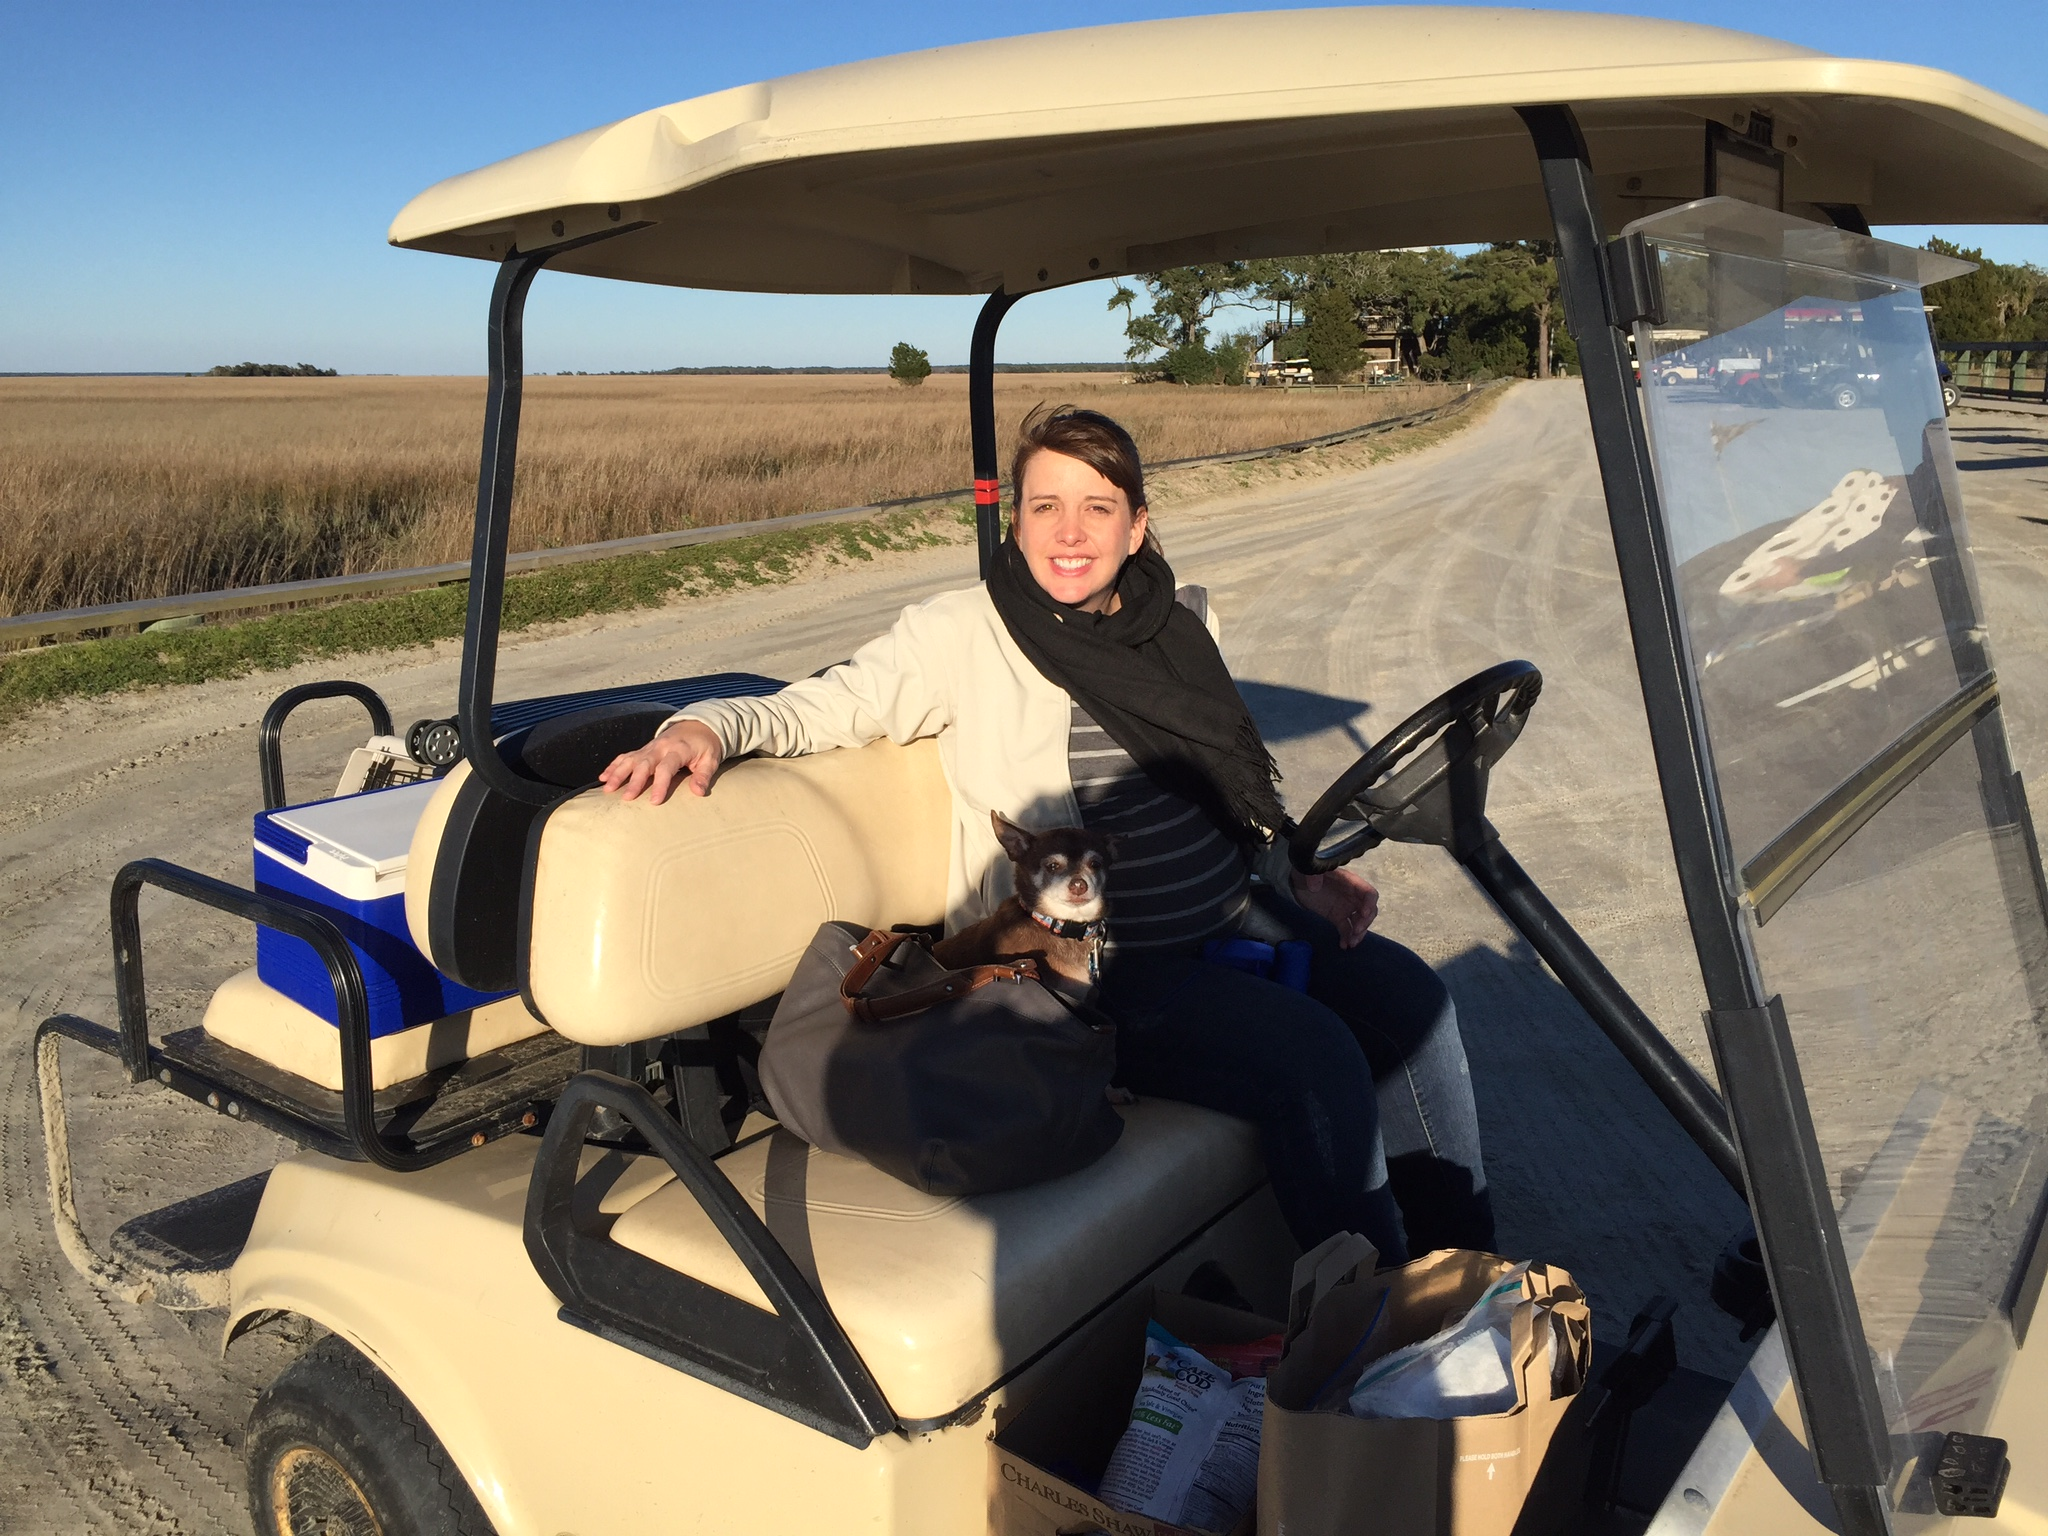 Tater is ready to ride! Dewees Island golf cart is loaded and ready for a weekend of exploring and fun.